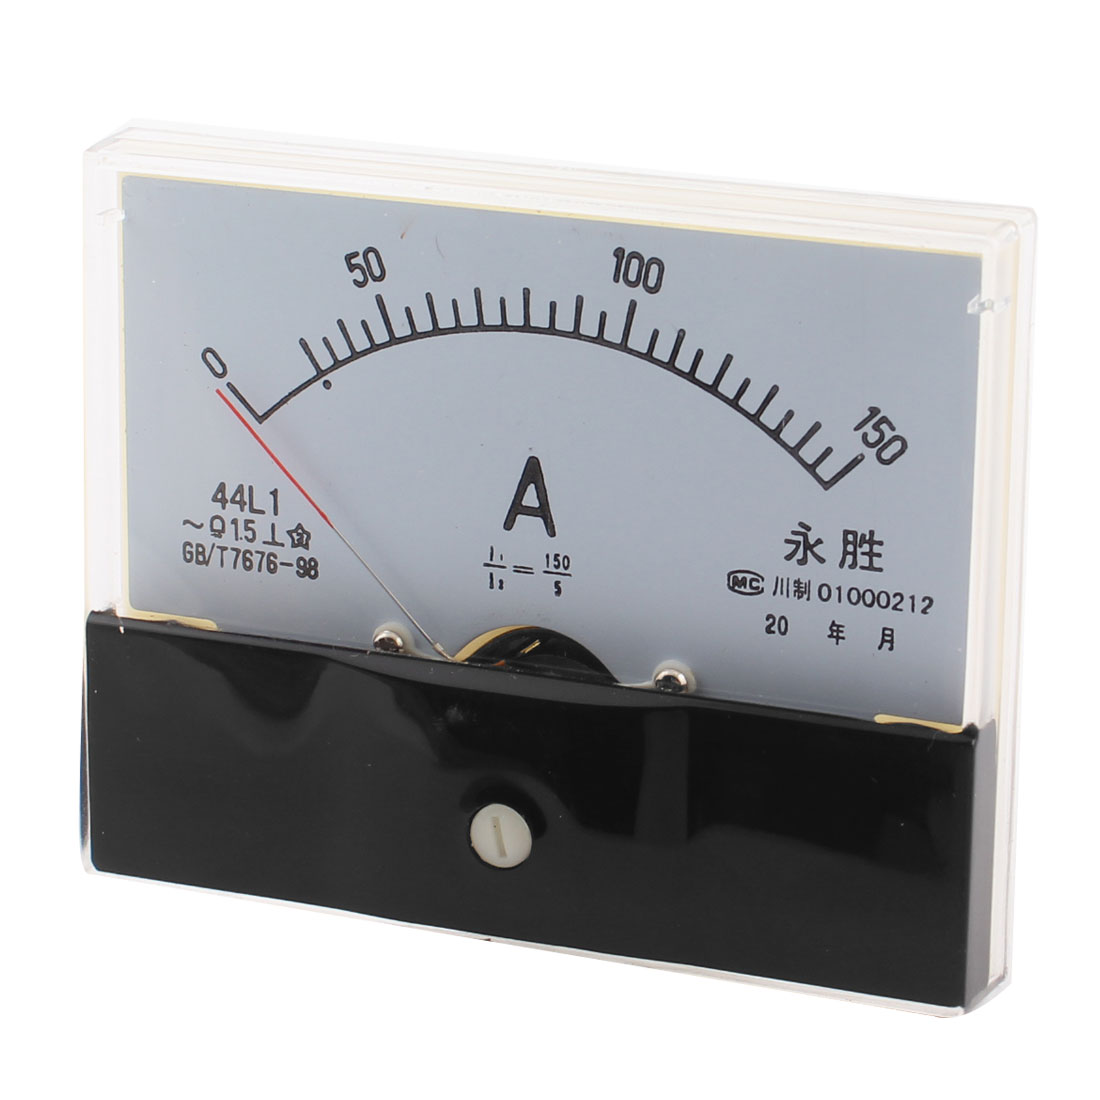 44L1 AC 0-150A Class 1.5 Rectangle Shape Analog Panel Ammeter Gauge Ampere Meter Amperemeter